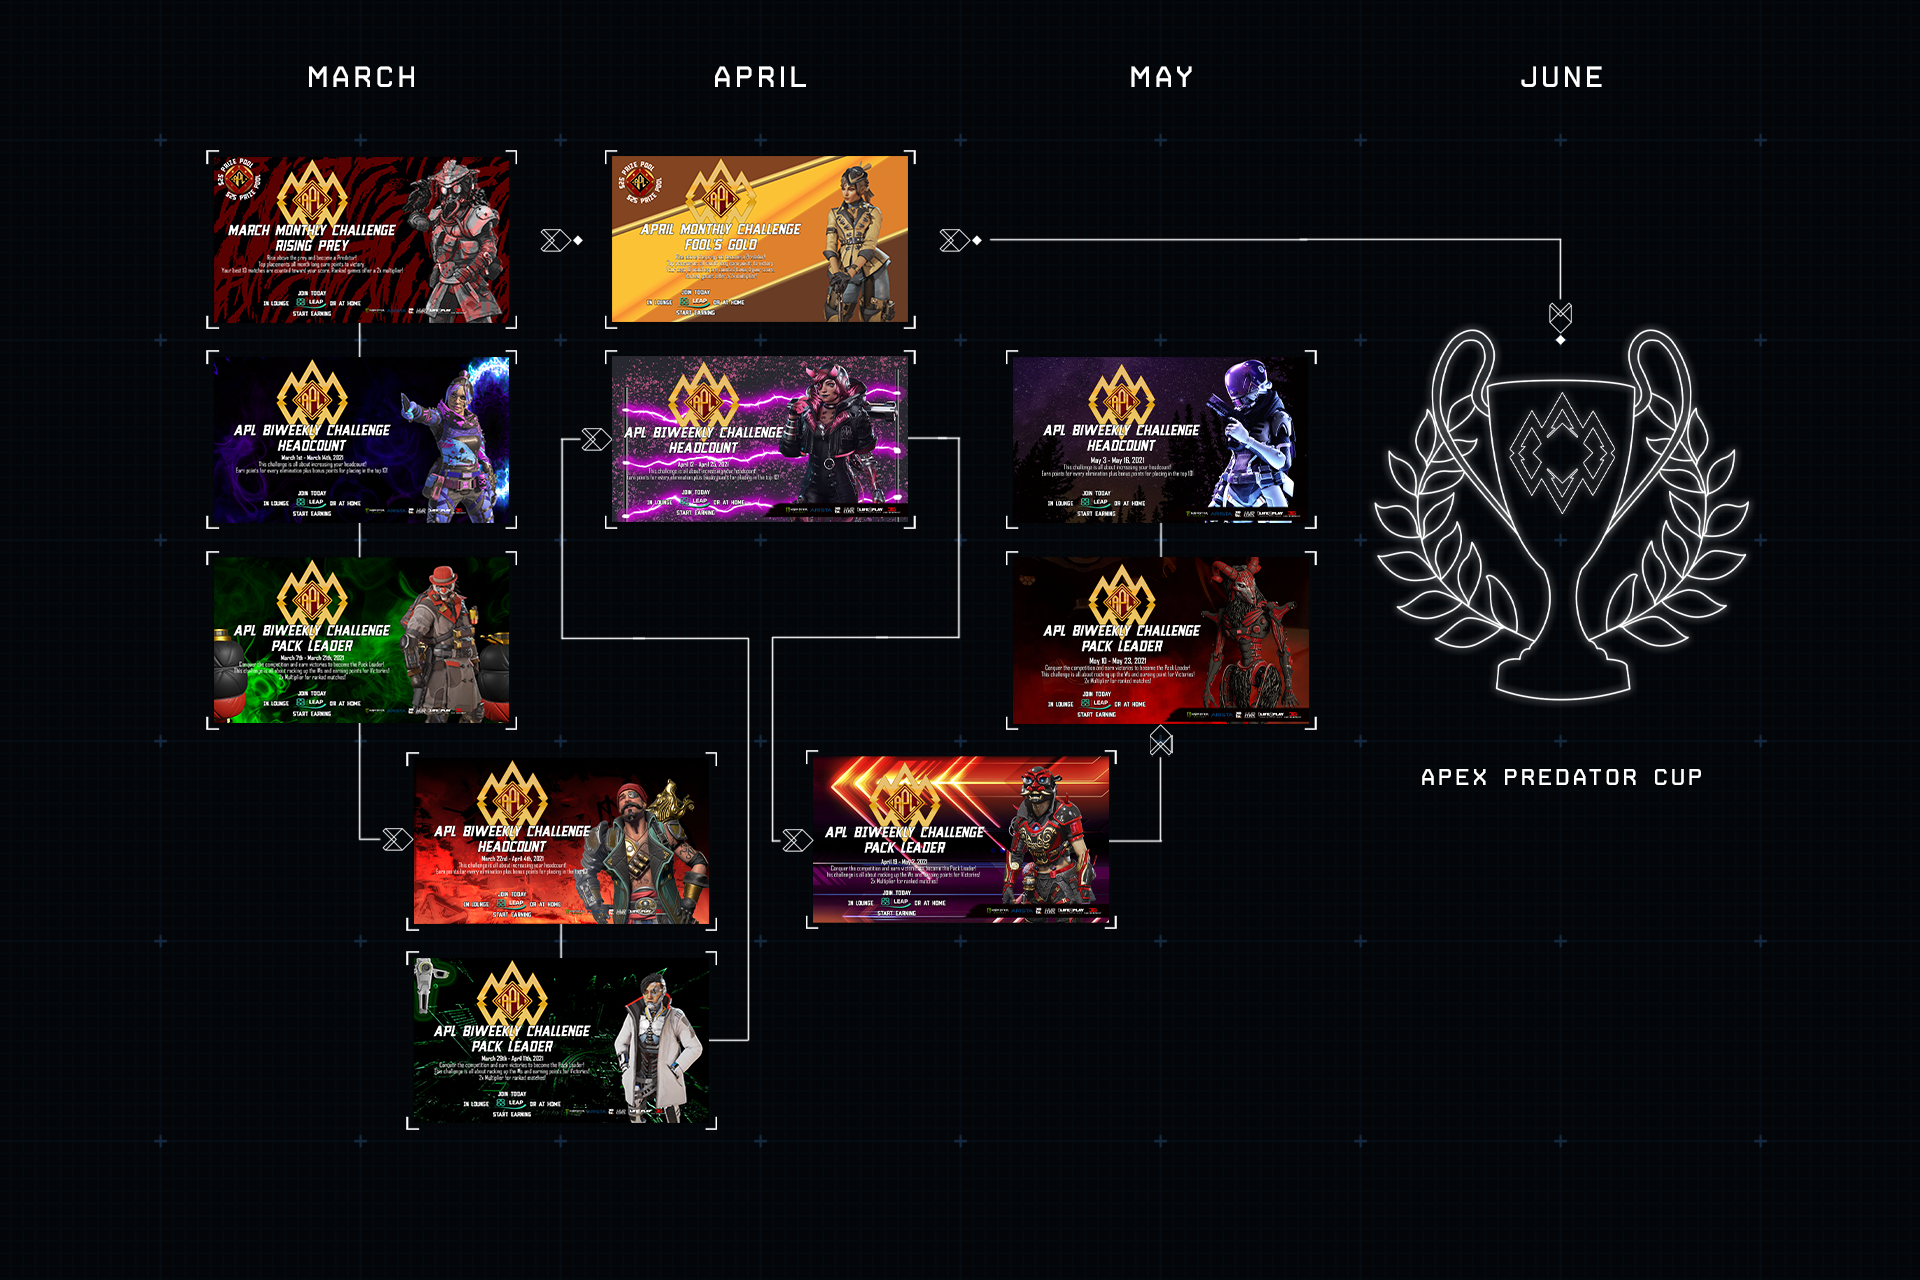 - Apex Predators Road Map for Website 1 - Apex Predator League presented by 1Life2Play fueled by Monster Energy